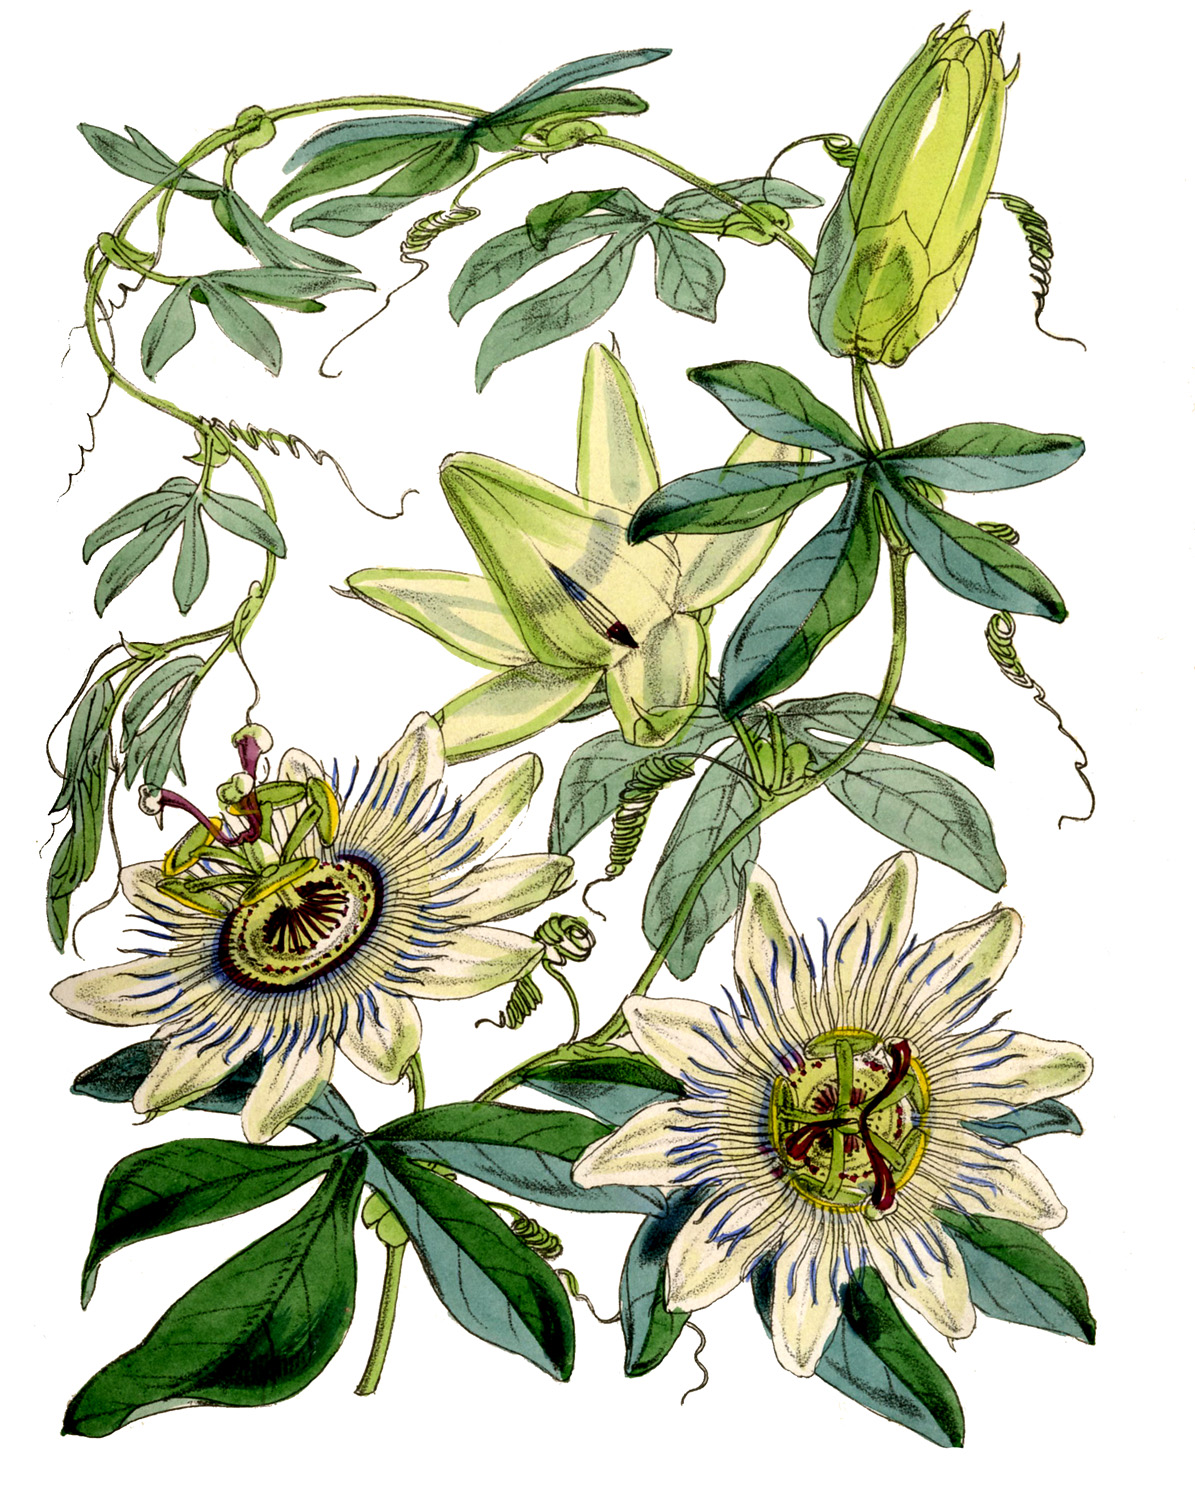 1000+ images about mburucuyá / passion flower on Pinterest.